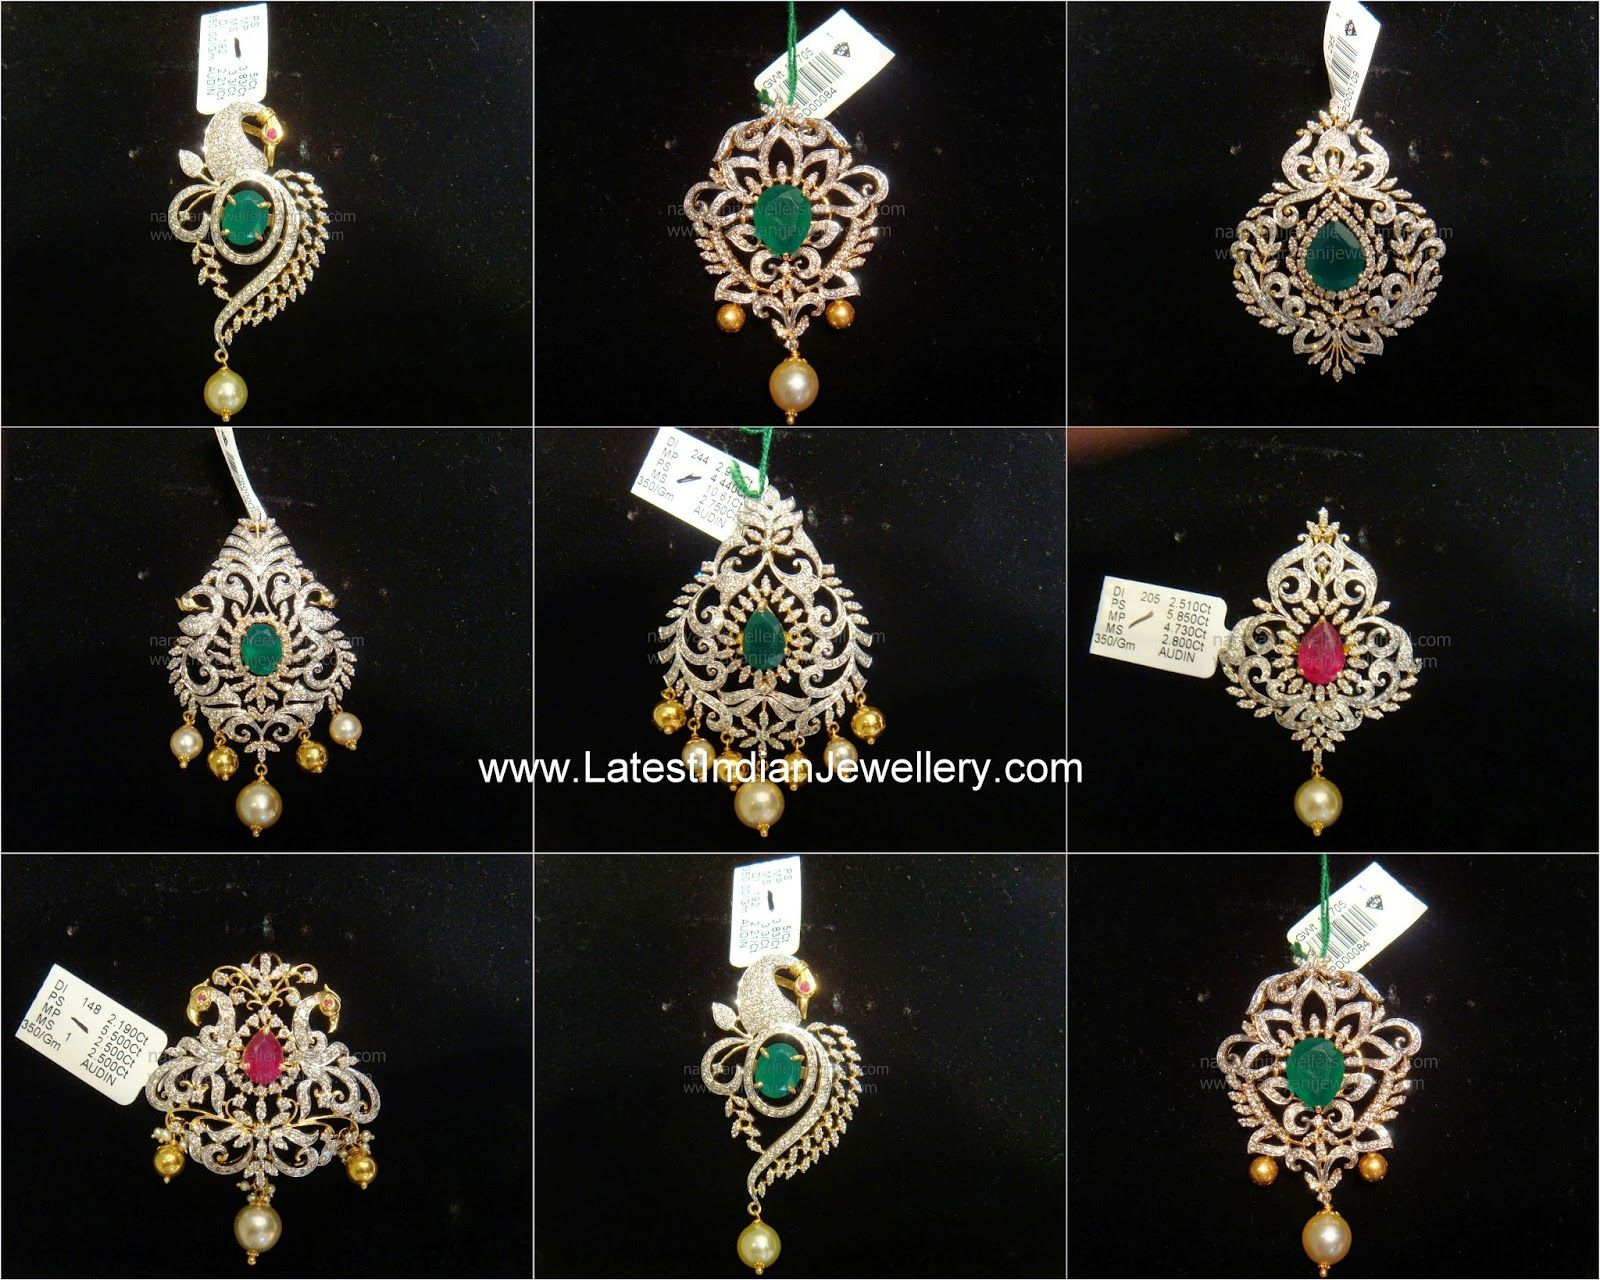 Diamond Pendants Collection Diamond Pendants Designs Diamond Pendant Diamond Jewelry Designs